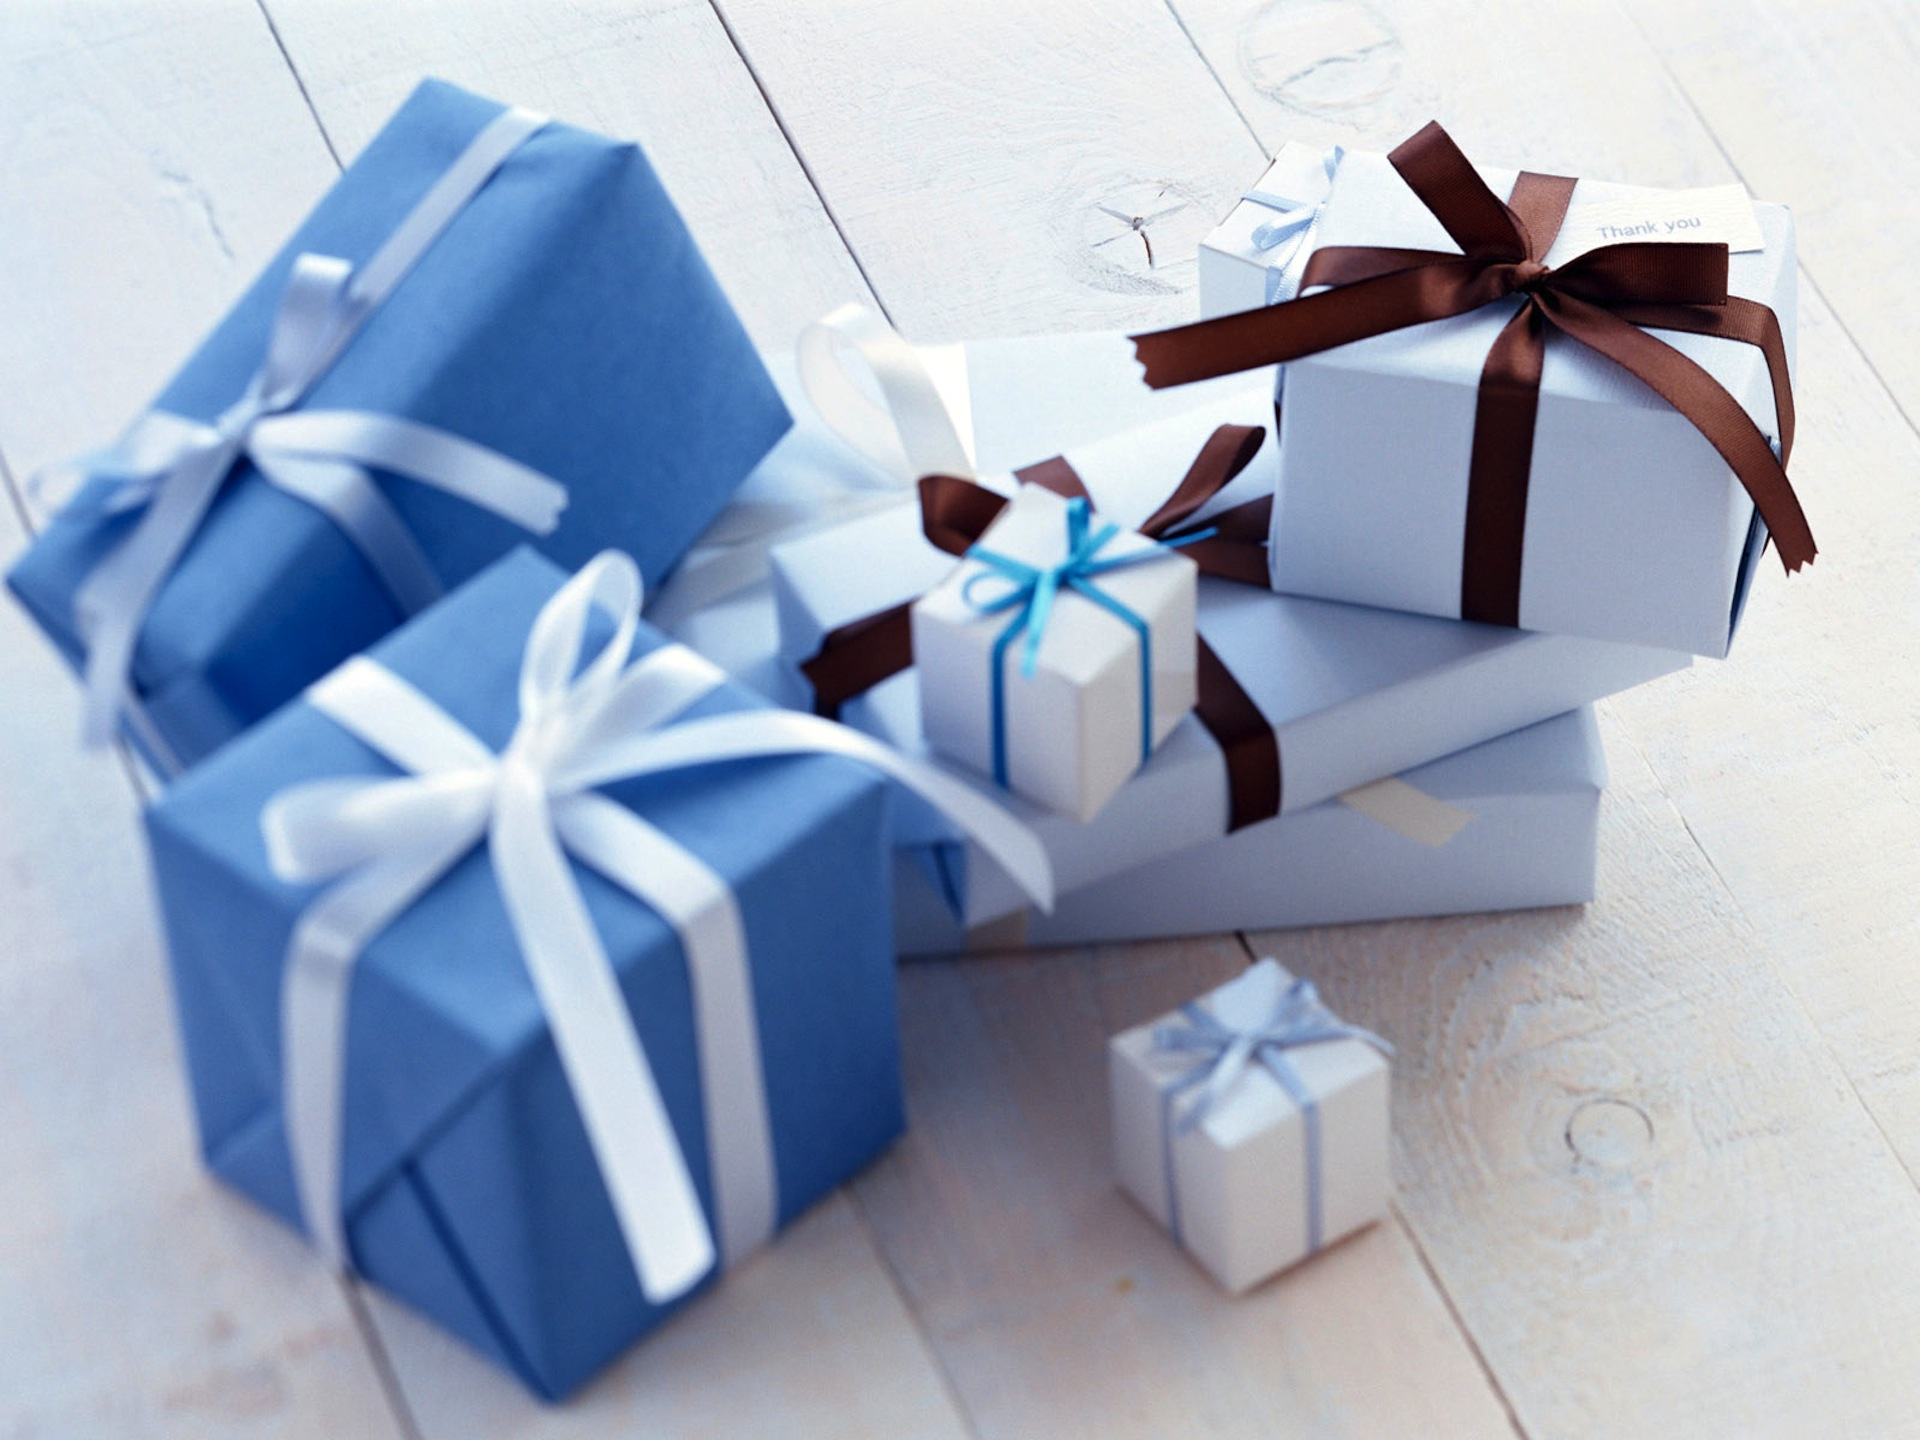 Gift Box wallpaper | 1920x1440 | #68331